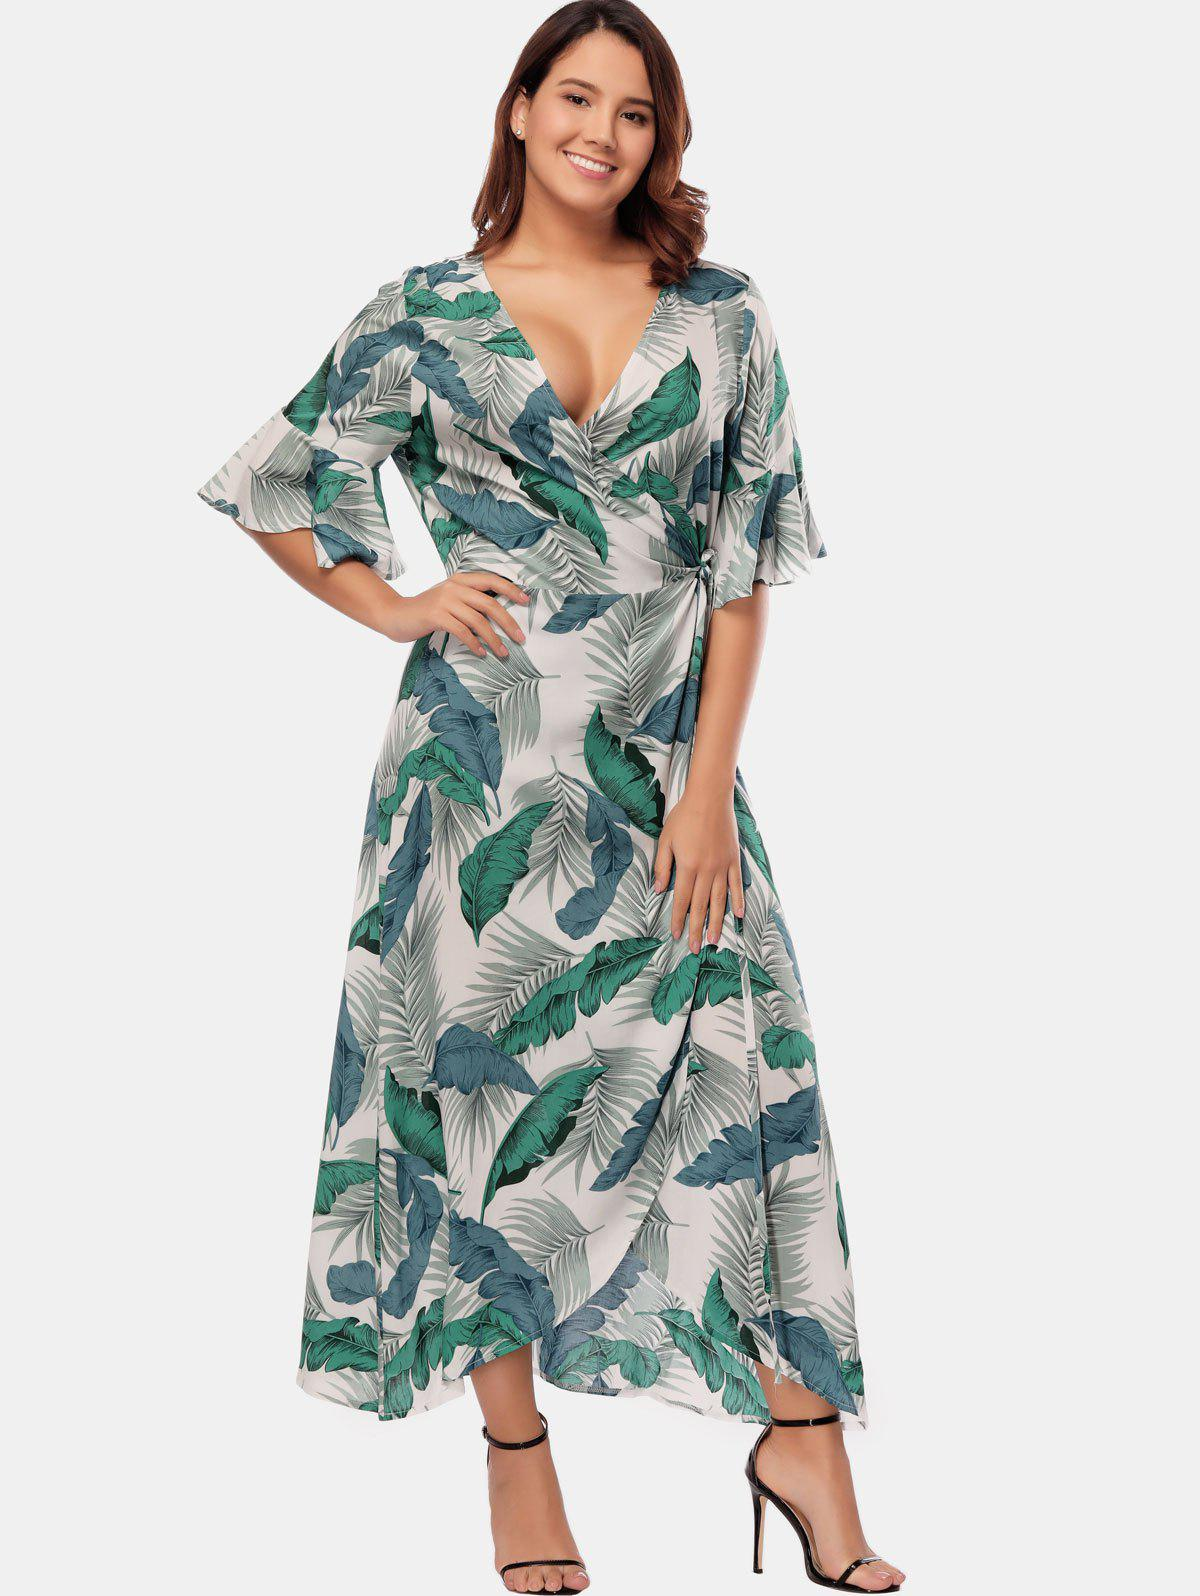 8cdb46293ce 35% OFF  Tropical Print Plus Size Wrap Dress